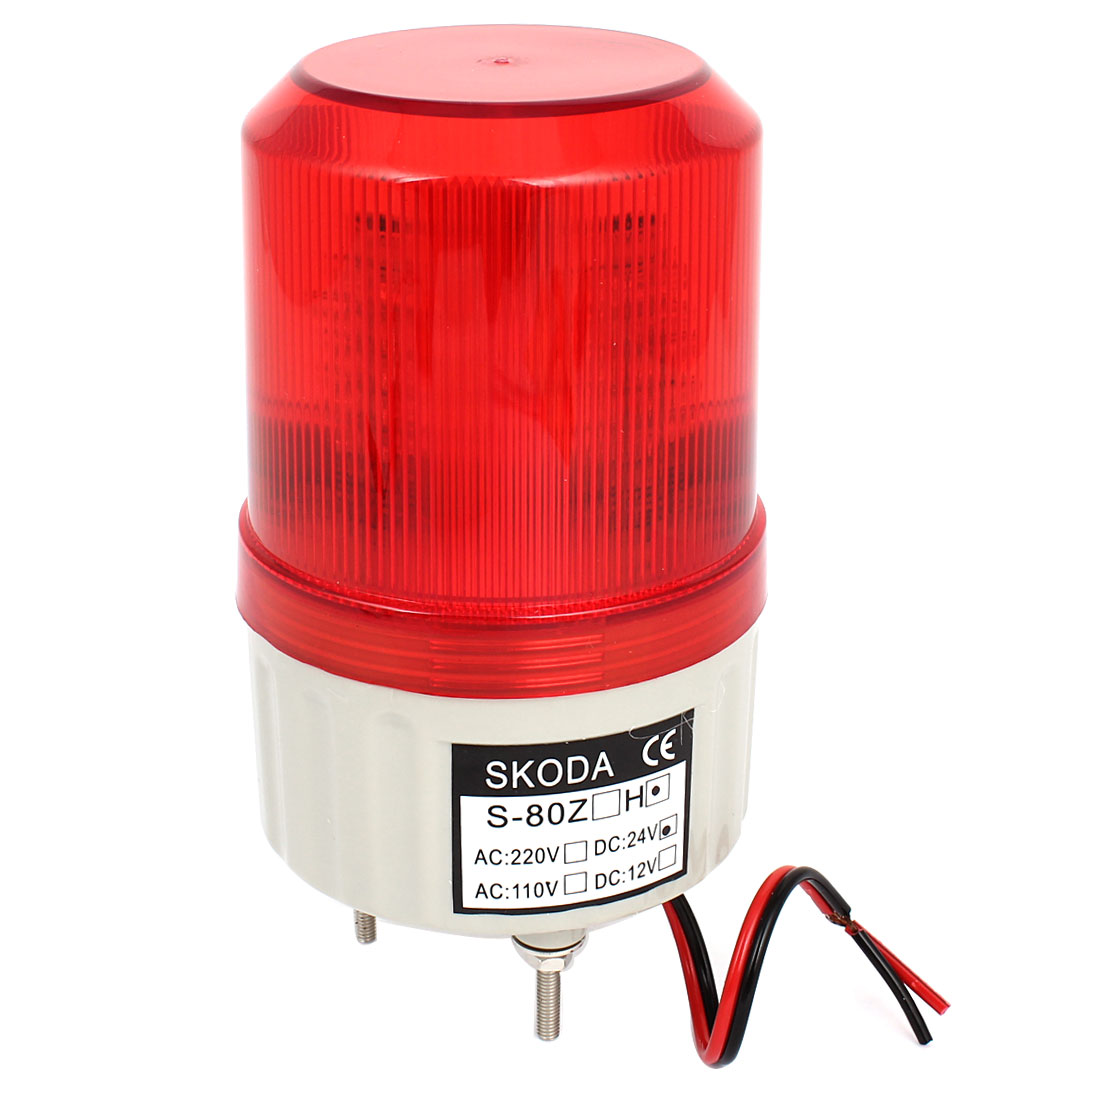 Red LED Flash Industrial Signal Tower Safety Stack Alarm Light 90dB DC 24V